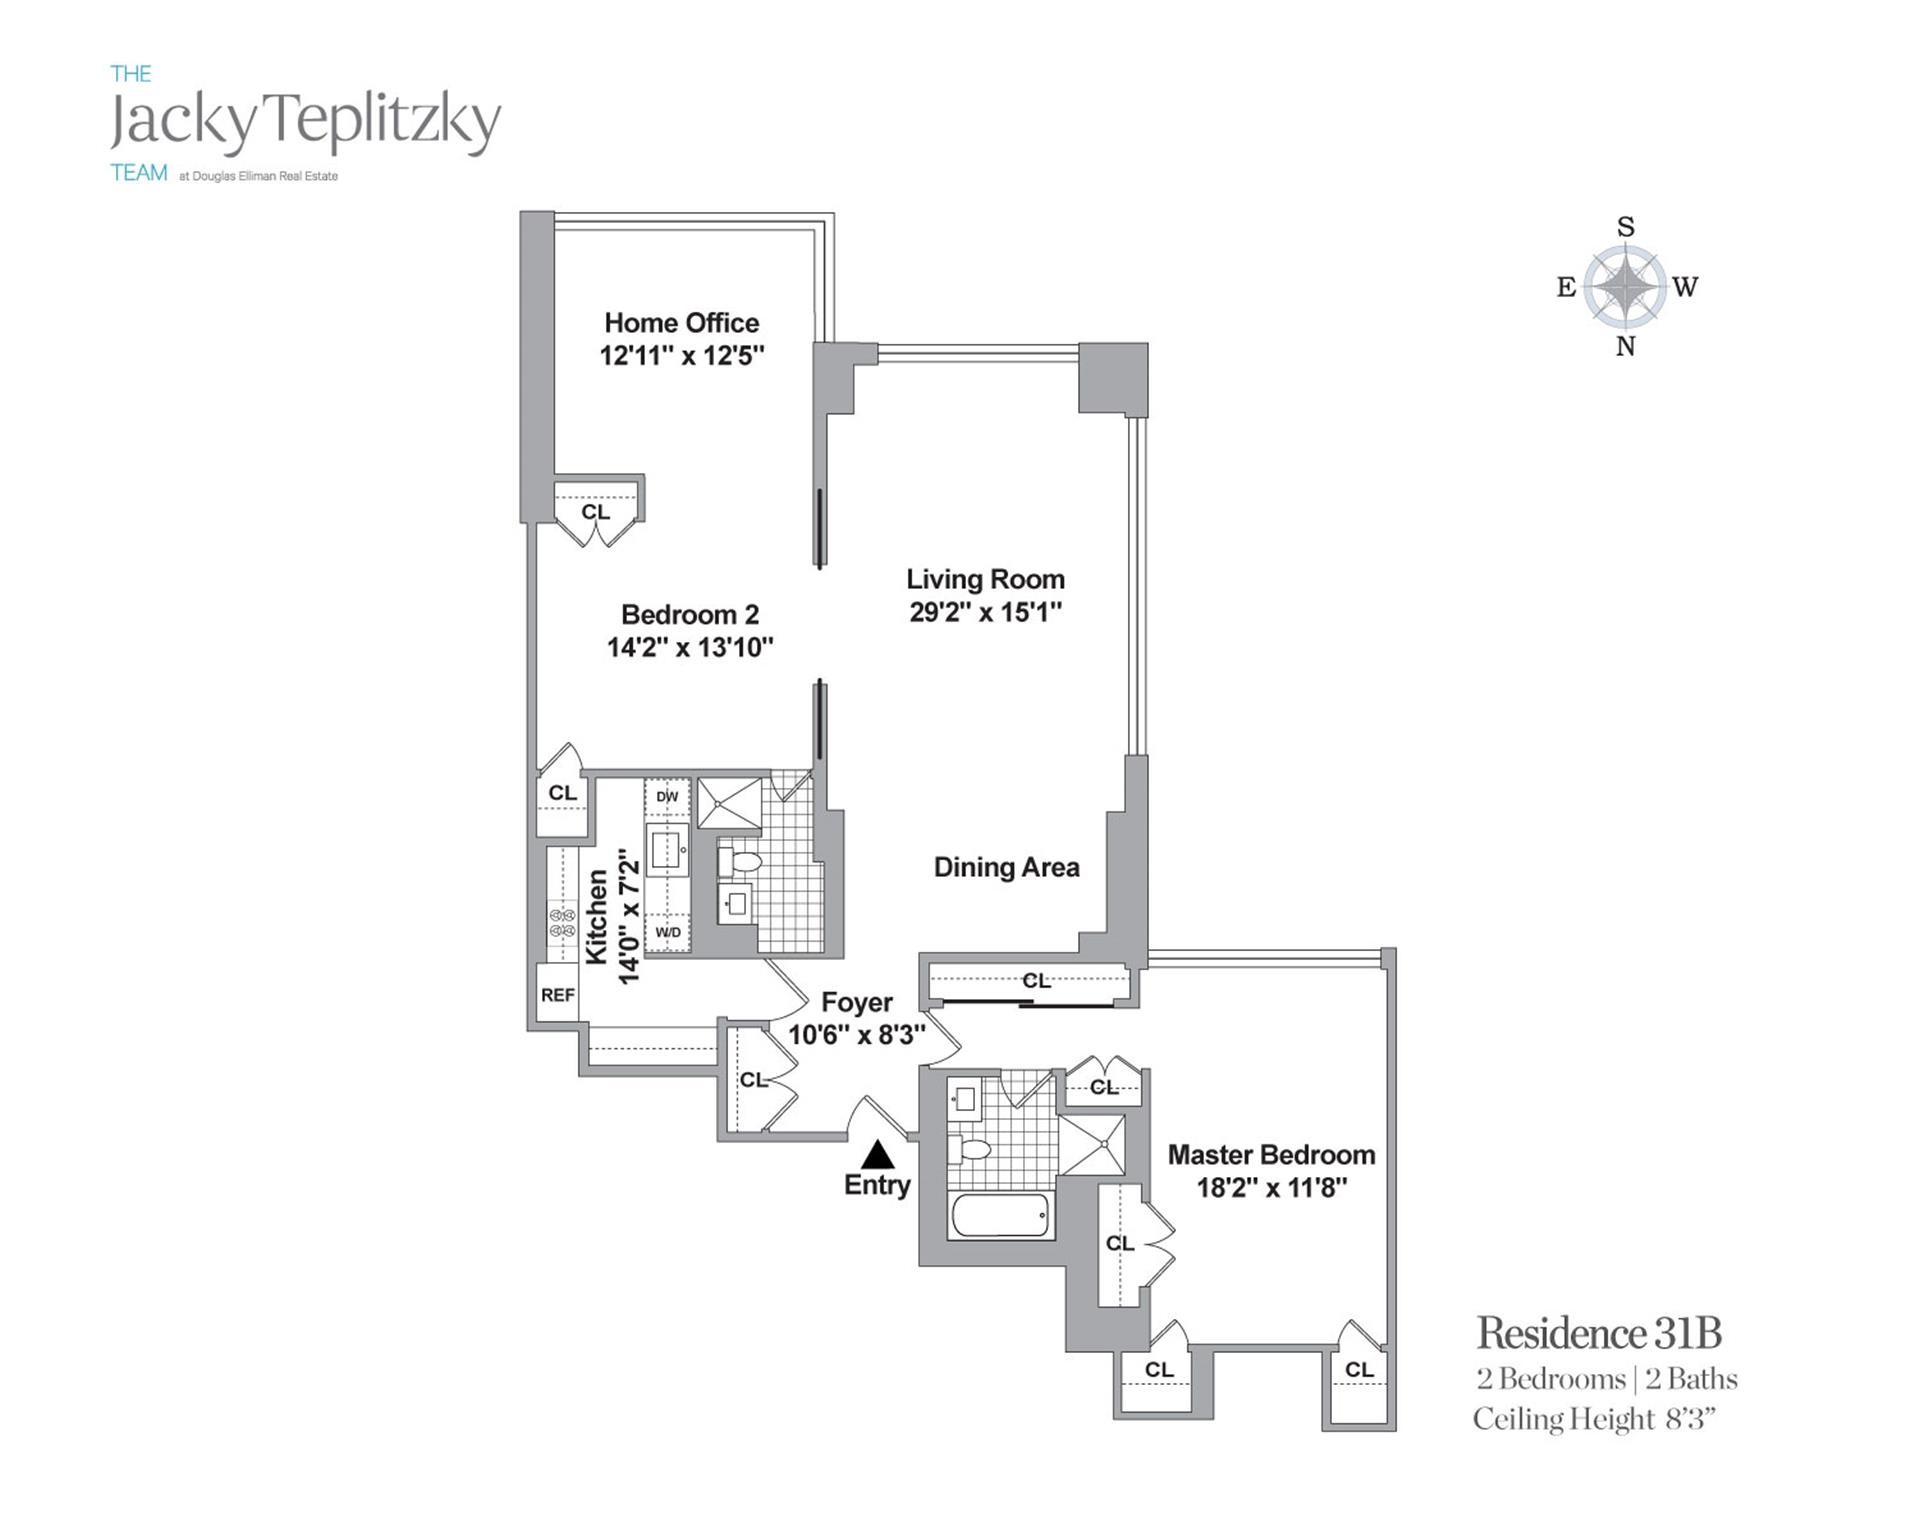 Floor plan of 117 East 57th St, 31B - Midtown, New York